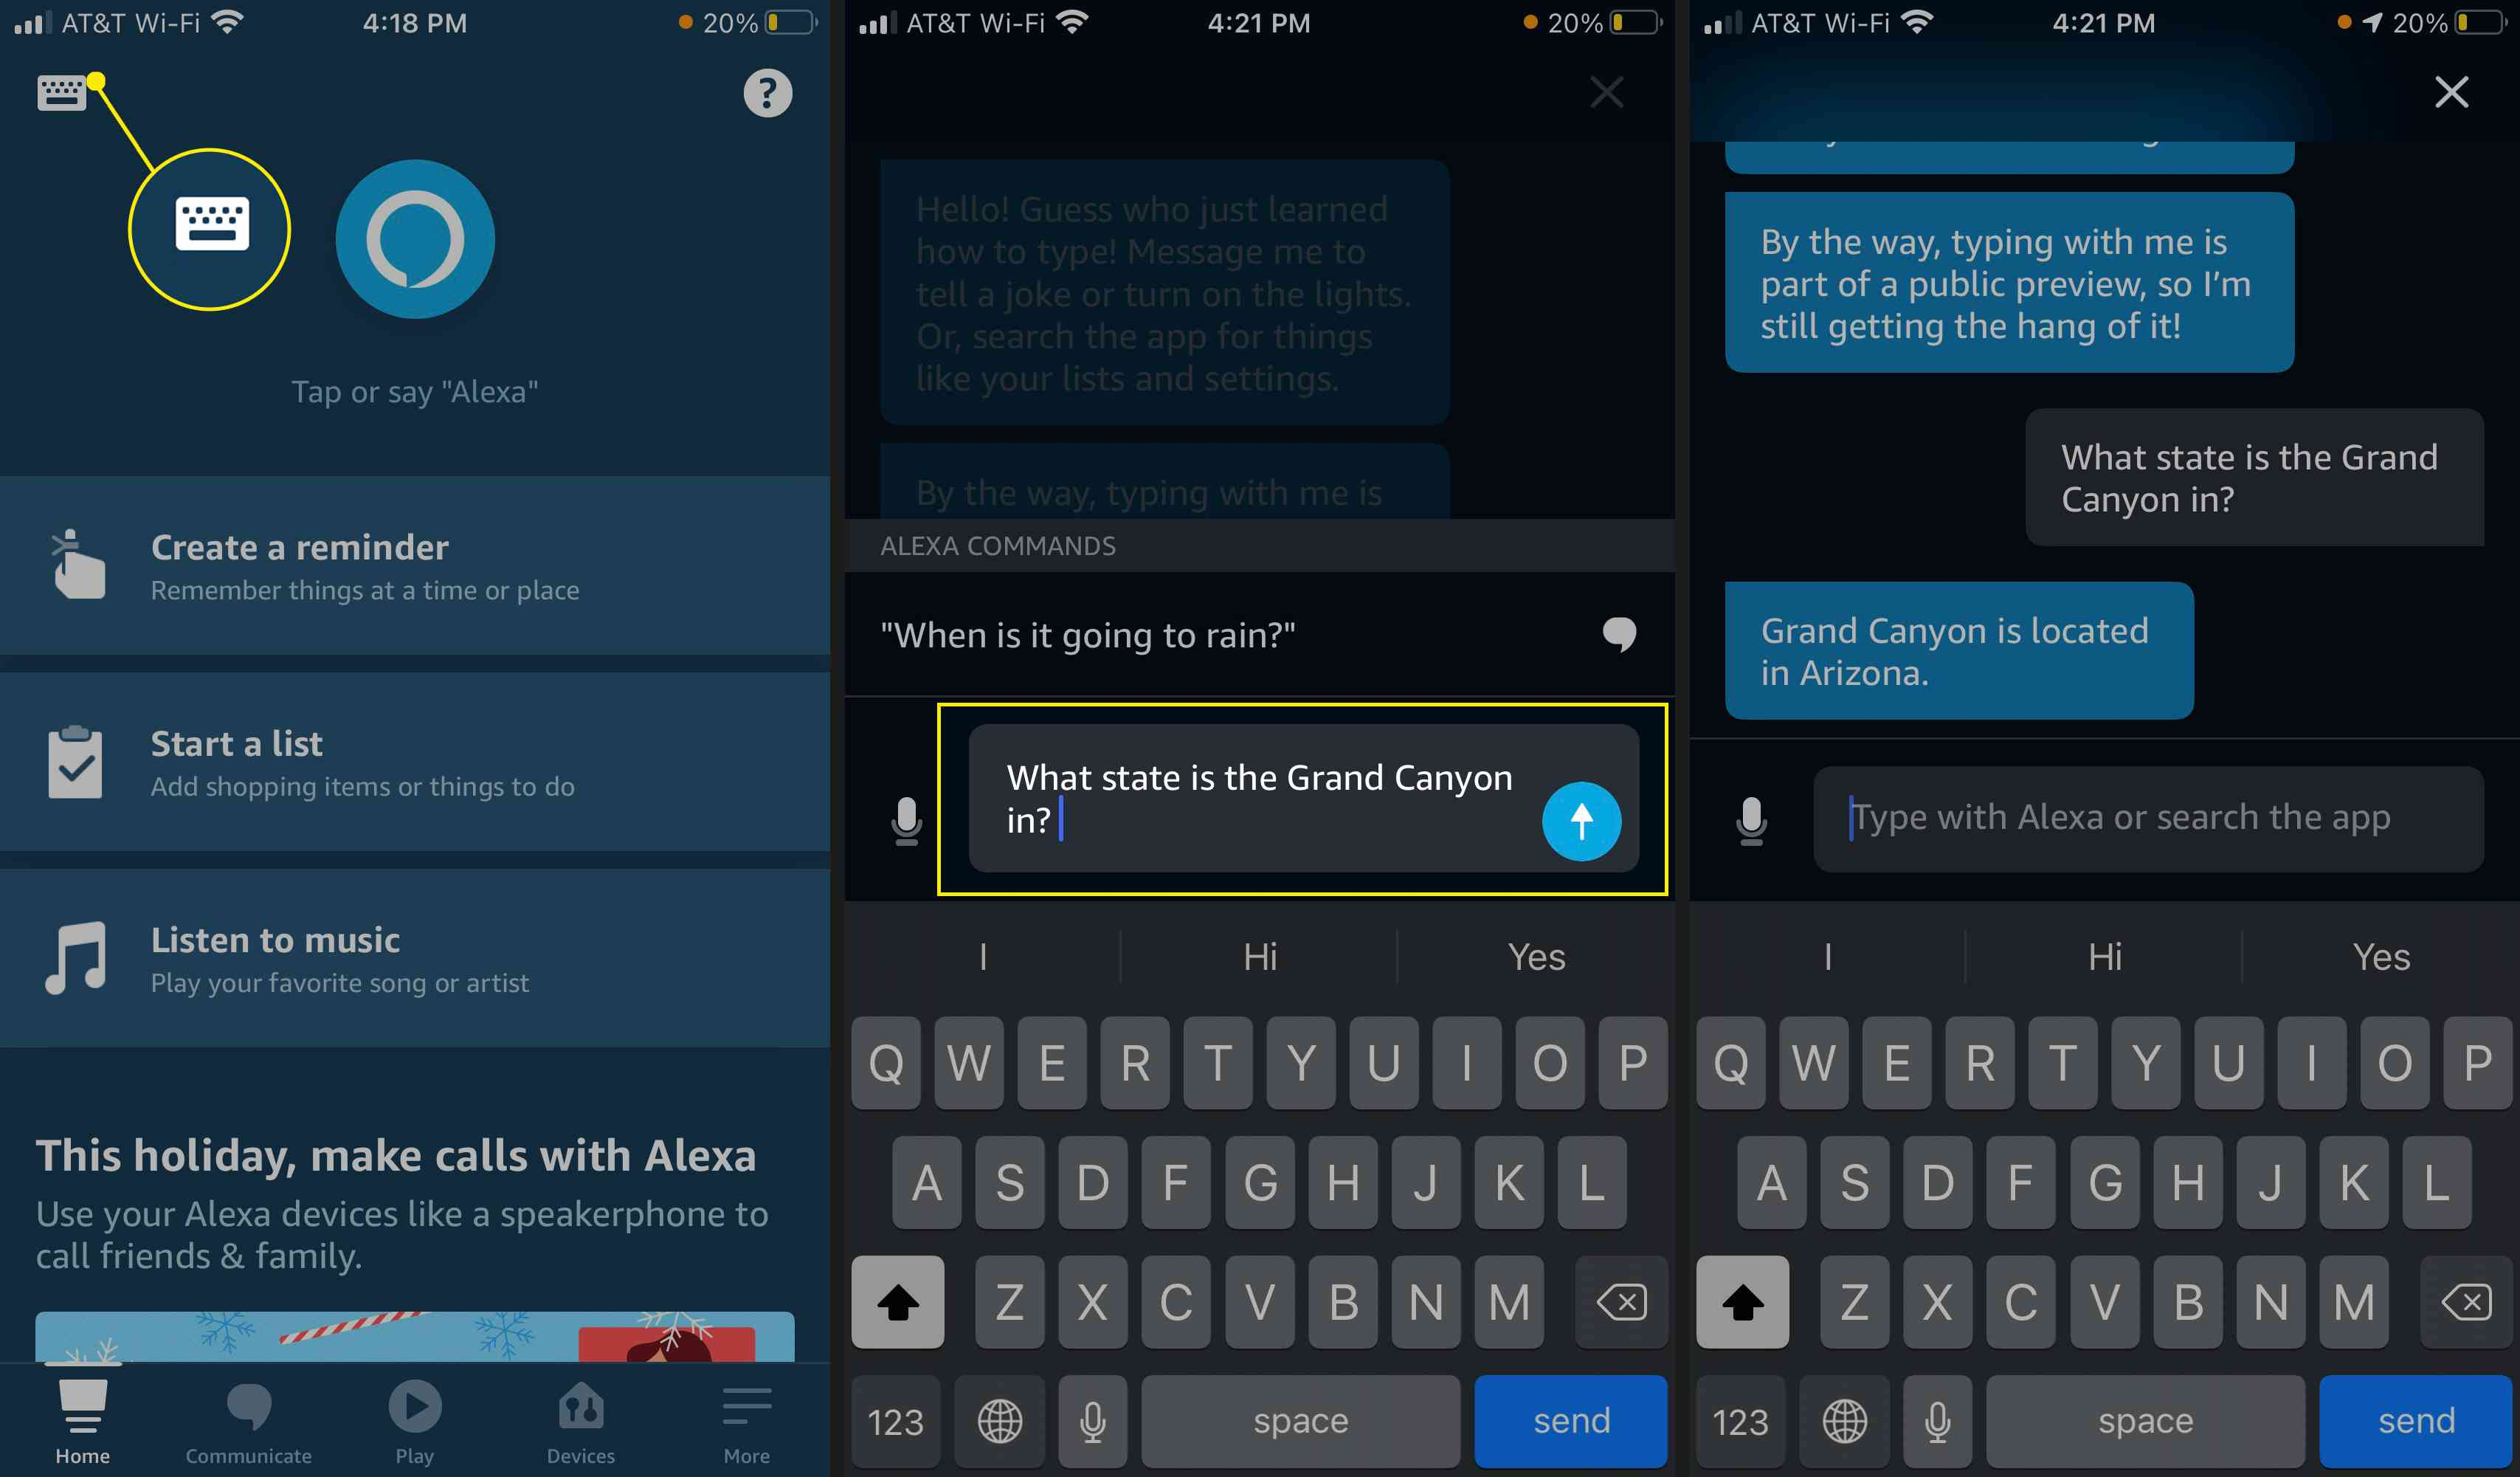 Type a query, tap Send, and Alexa will respond via text.